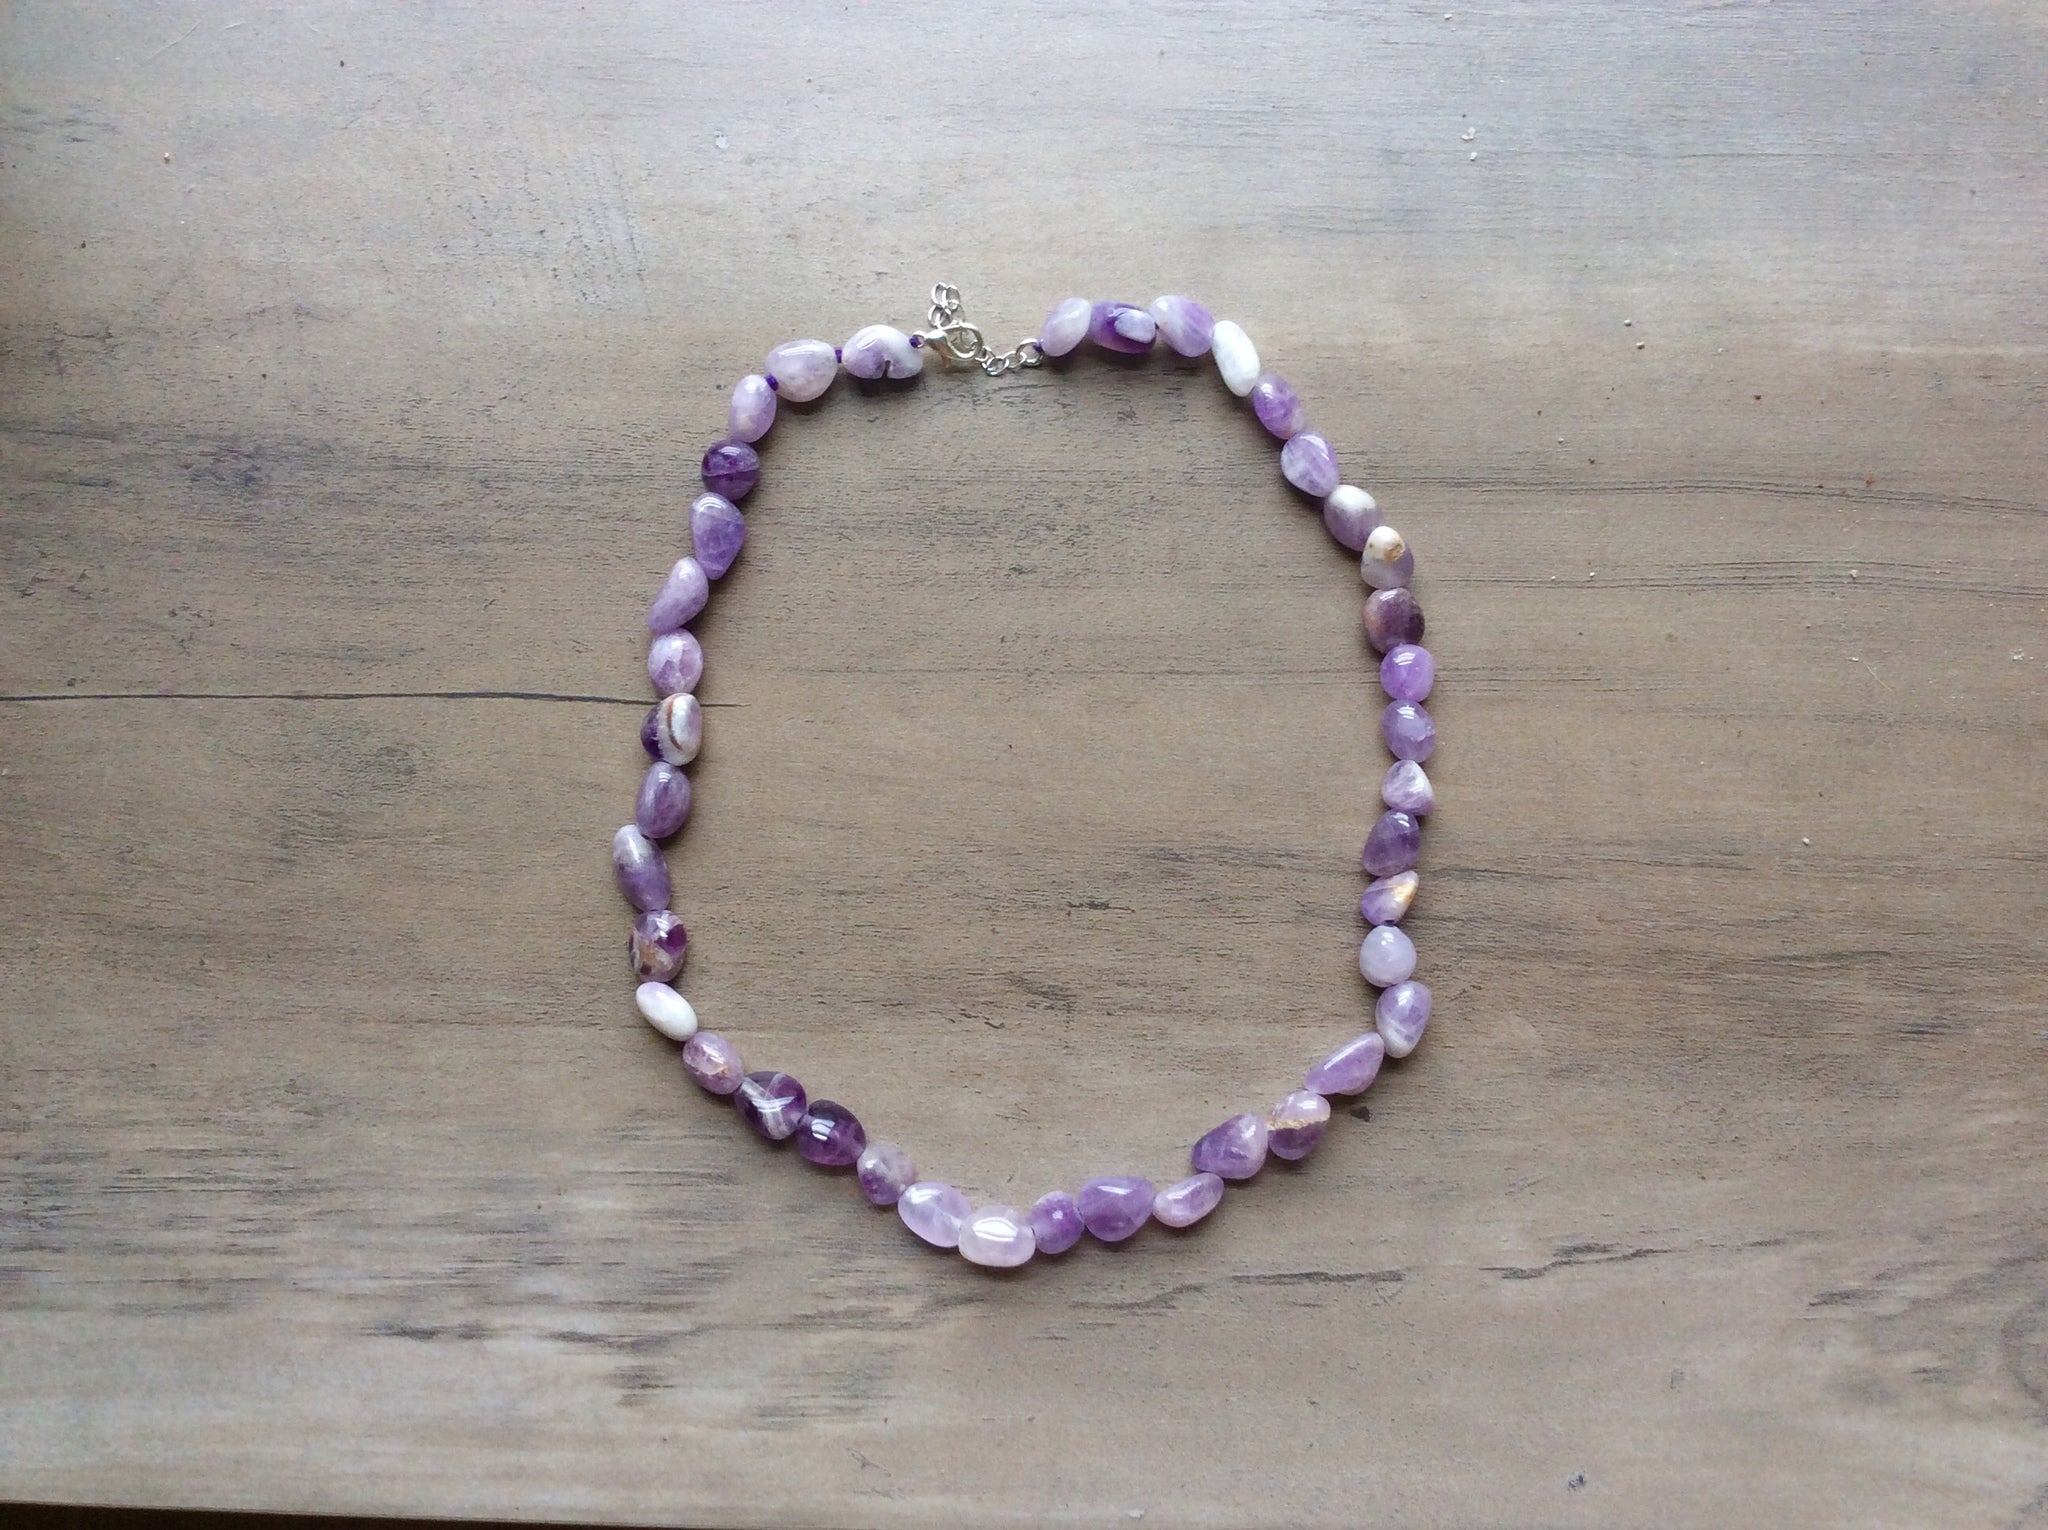 Amethyst Tumble Stone Necklace